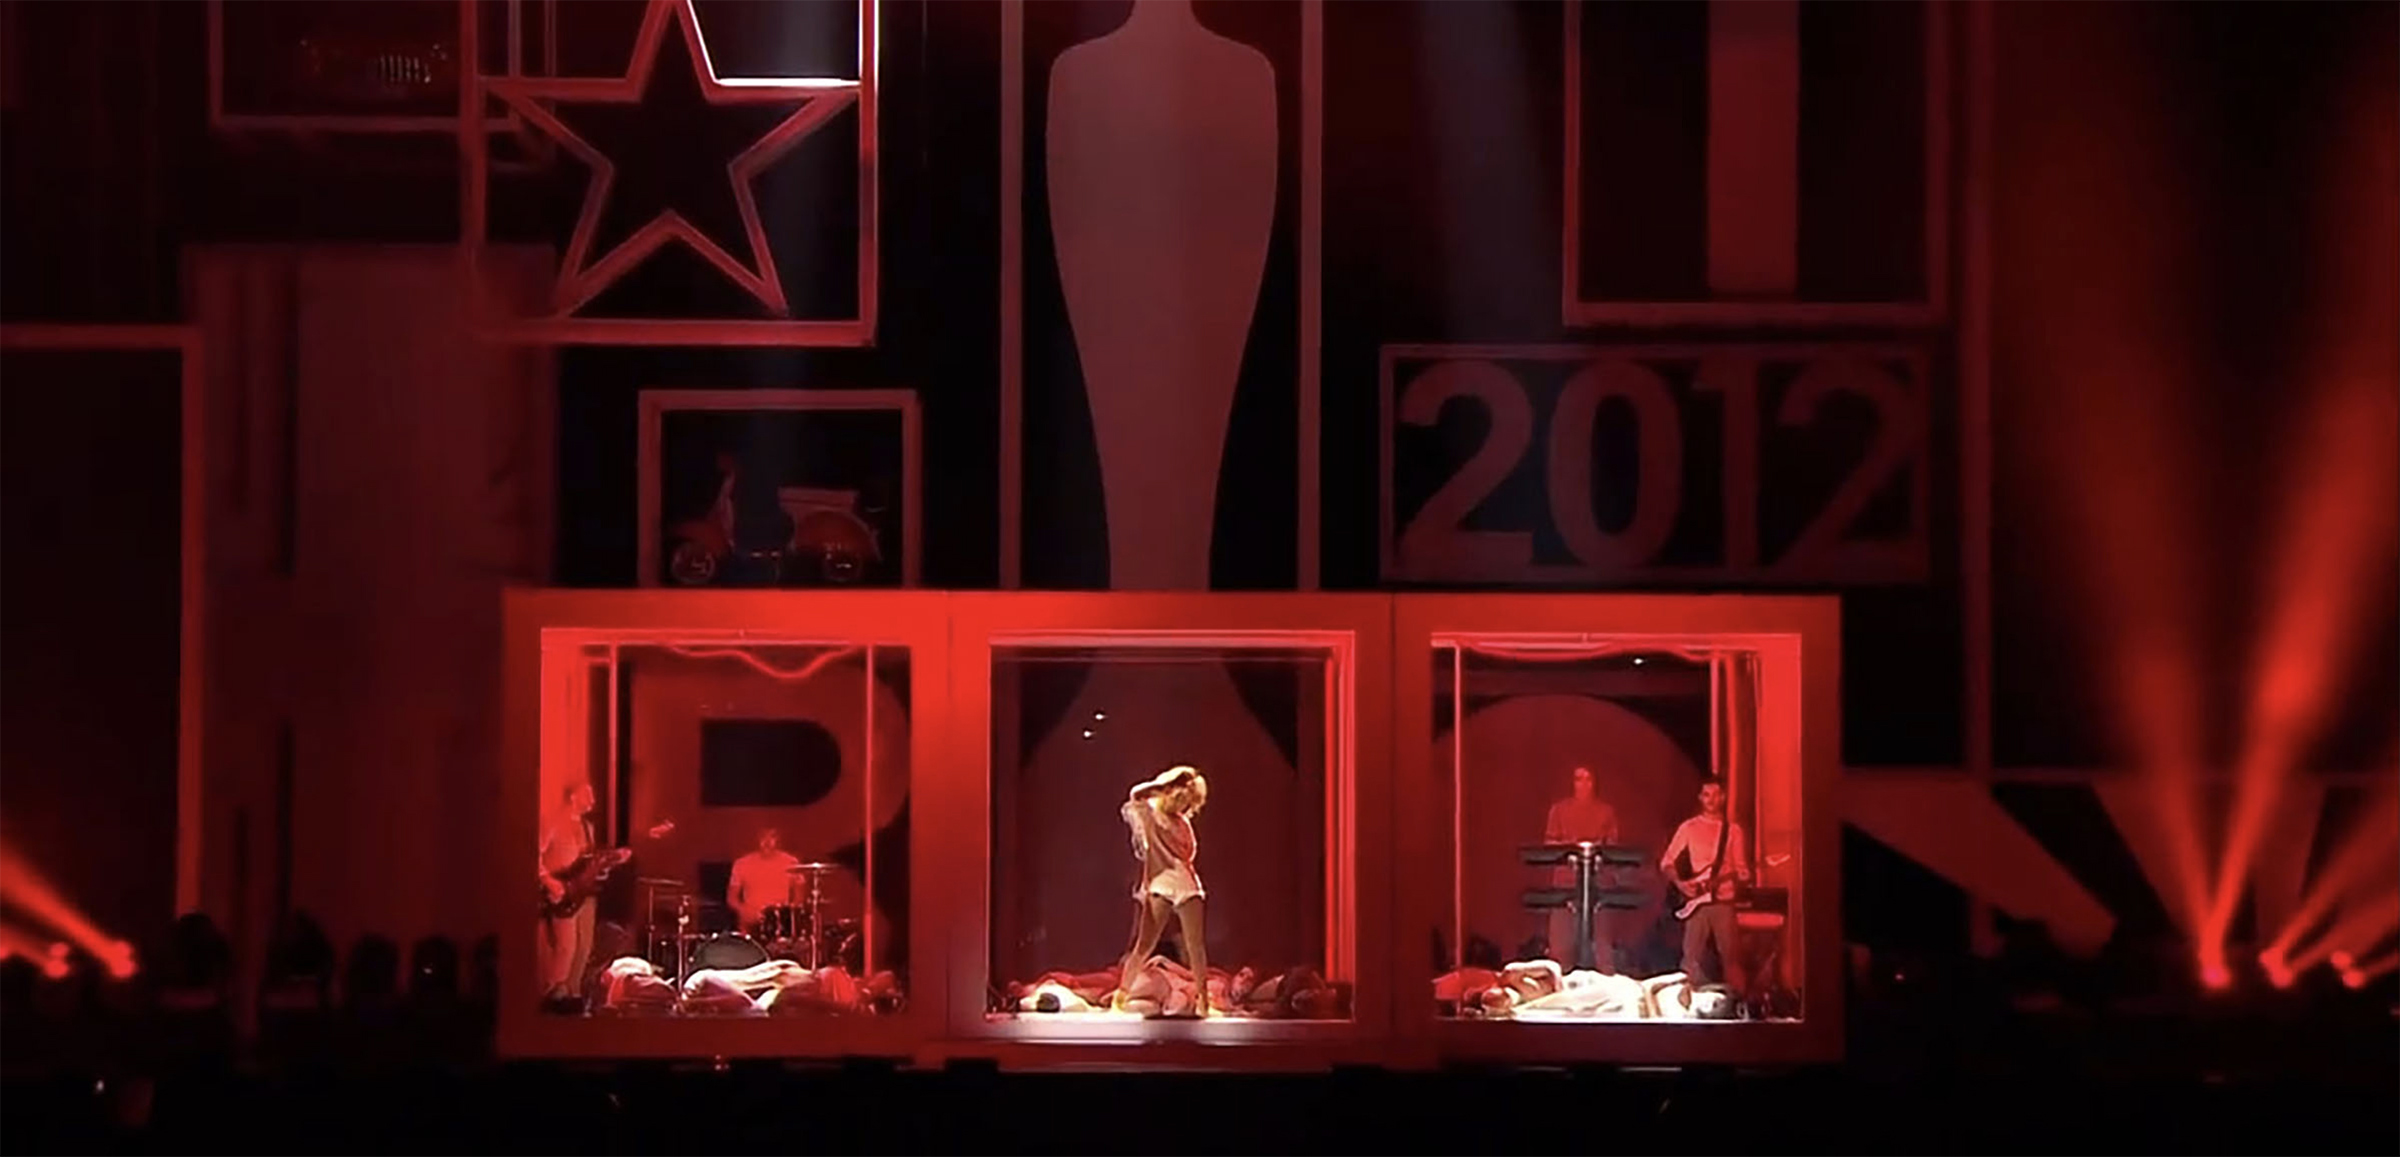 Luke Halls Studio — Rihanna, Brit Awards 2012